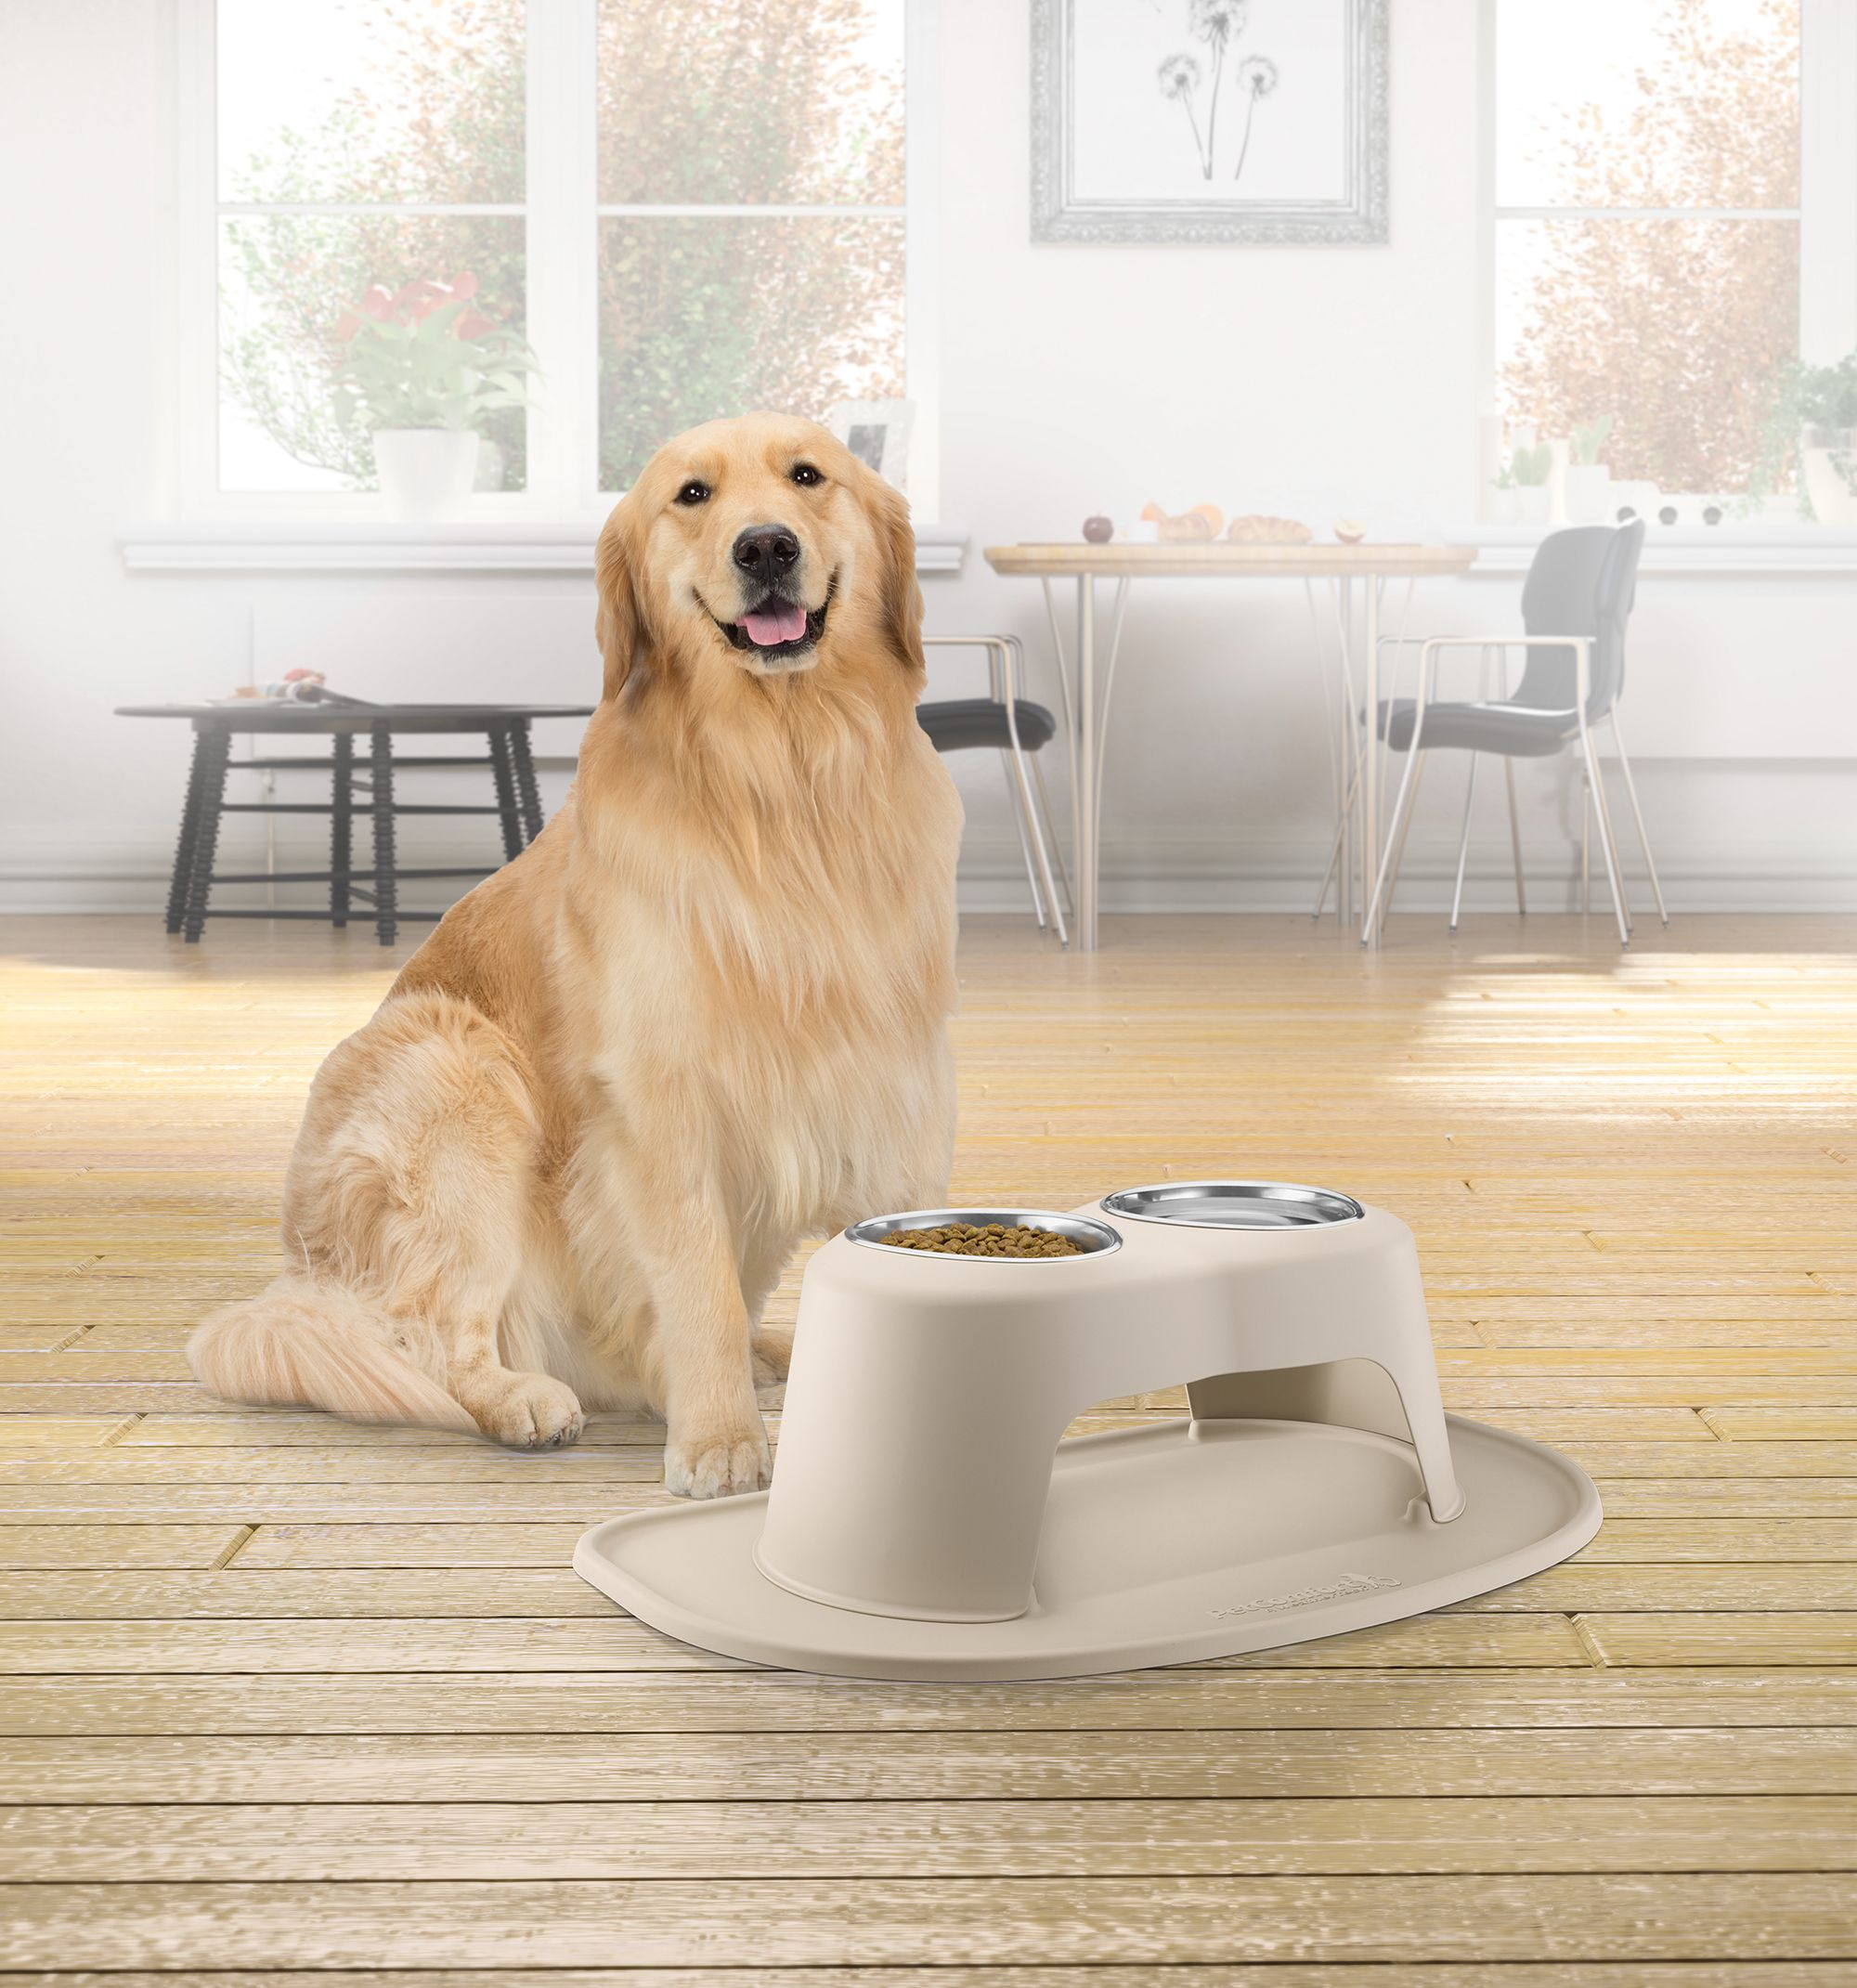 Introducing The Petcomfort Feeding System By Weathertech Finally